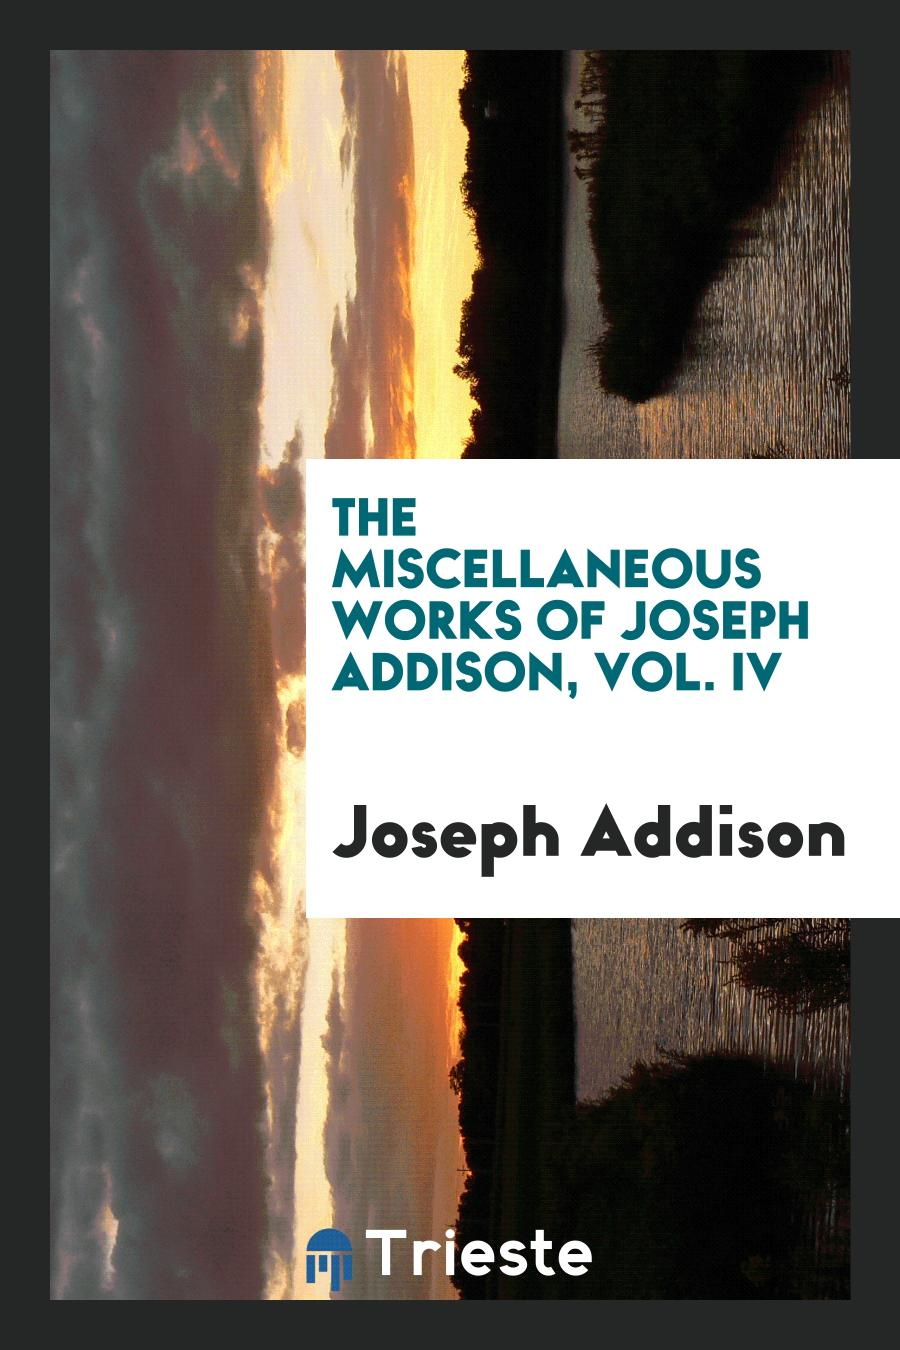 The Miscellaneous Works of Joseph Addison, Vol. IV